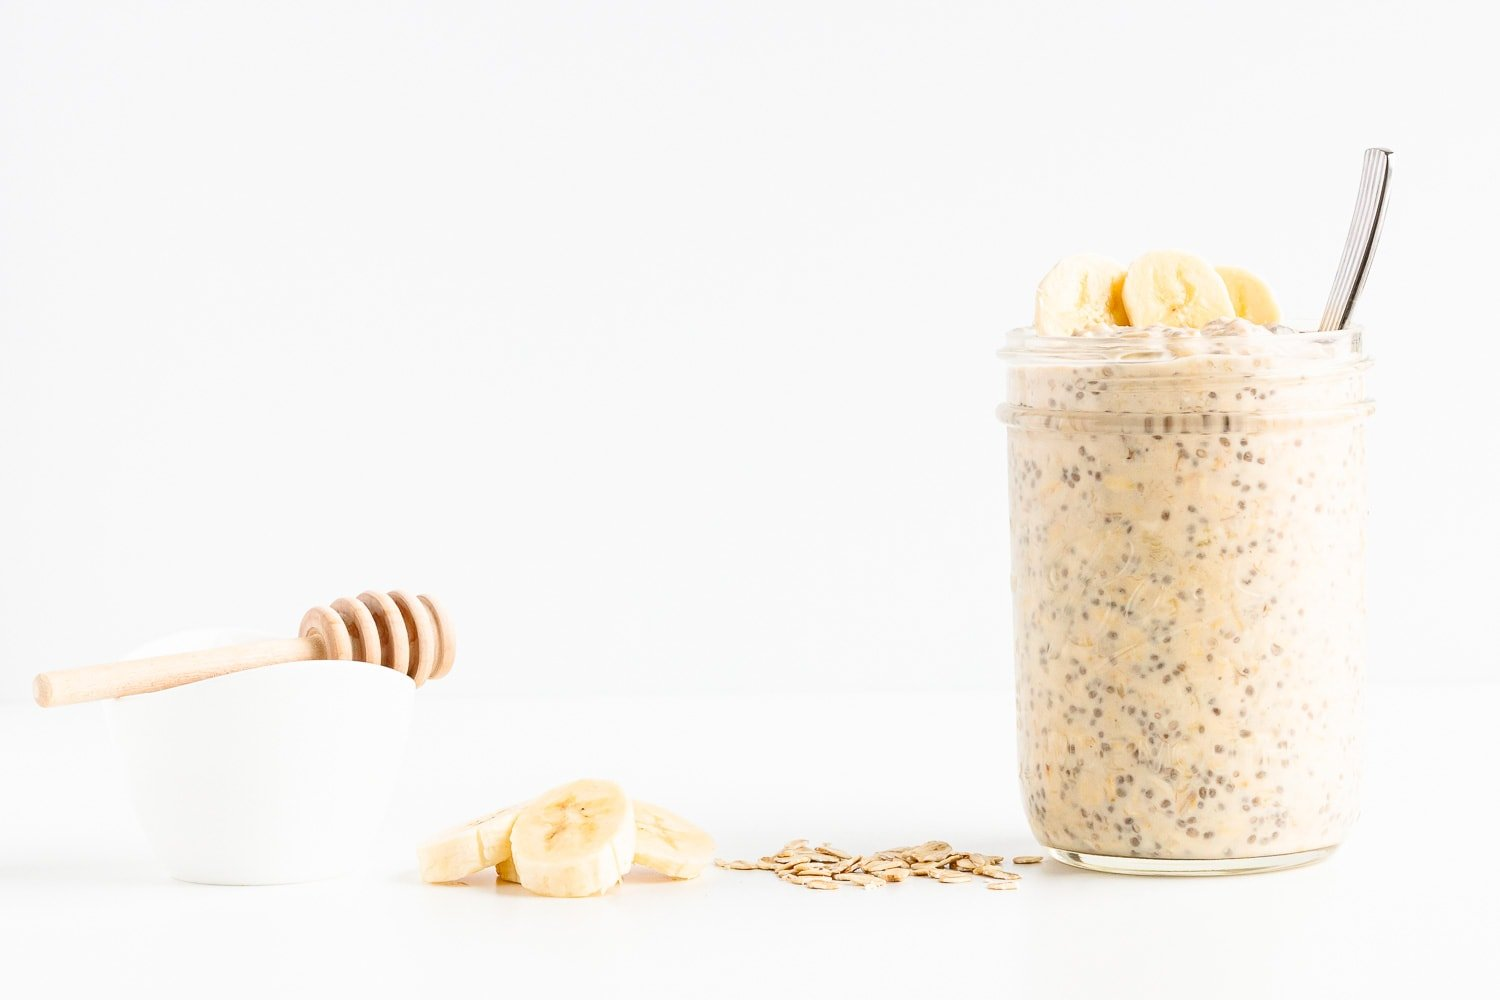 Line up of honey, banana slices, rolled oats and a jar of overnight oats against a white background.